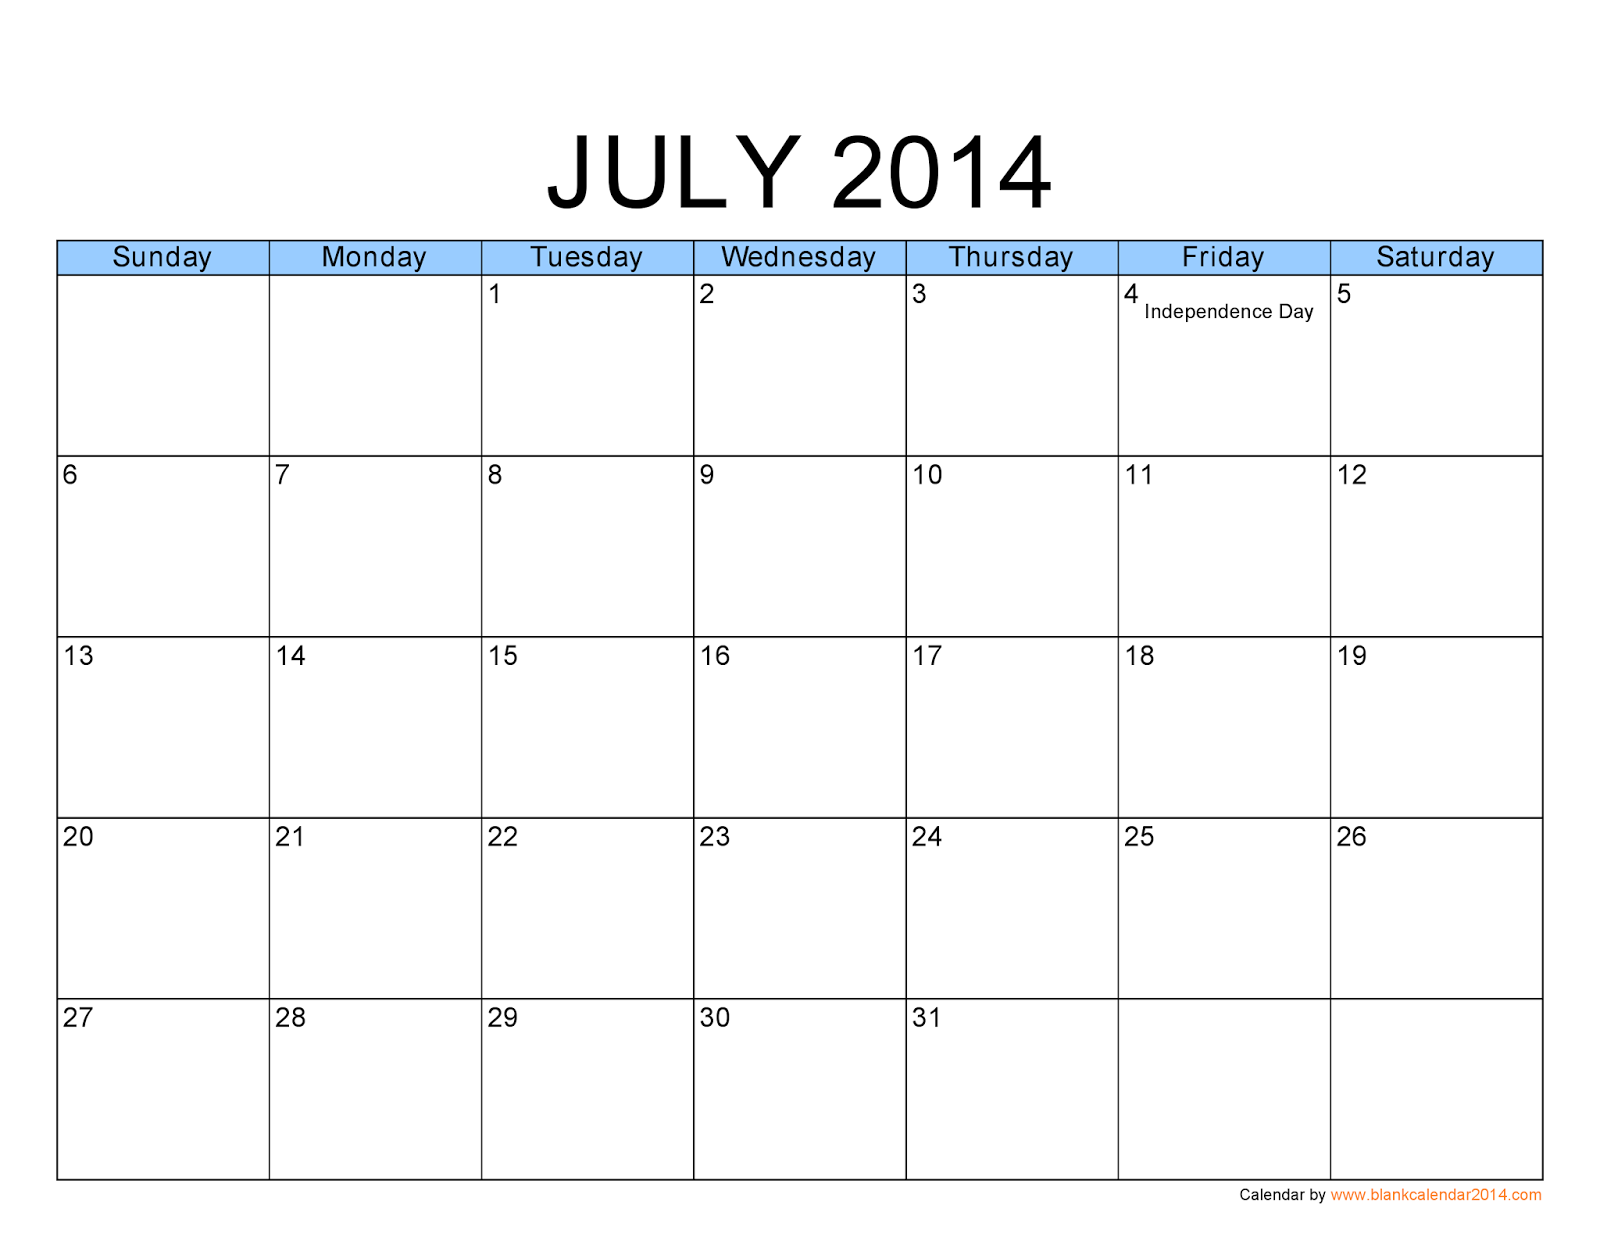 Printable Calendar Free July 2014 Cademic Calendar Office - 1600x1237 ...